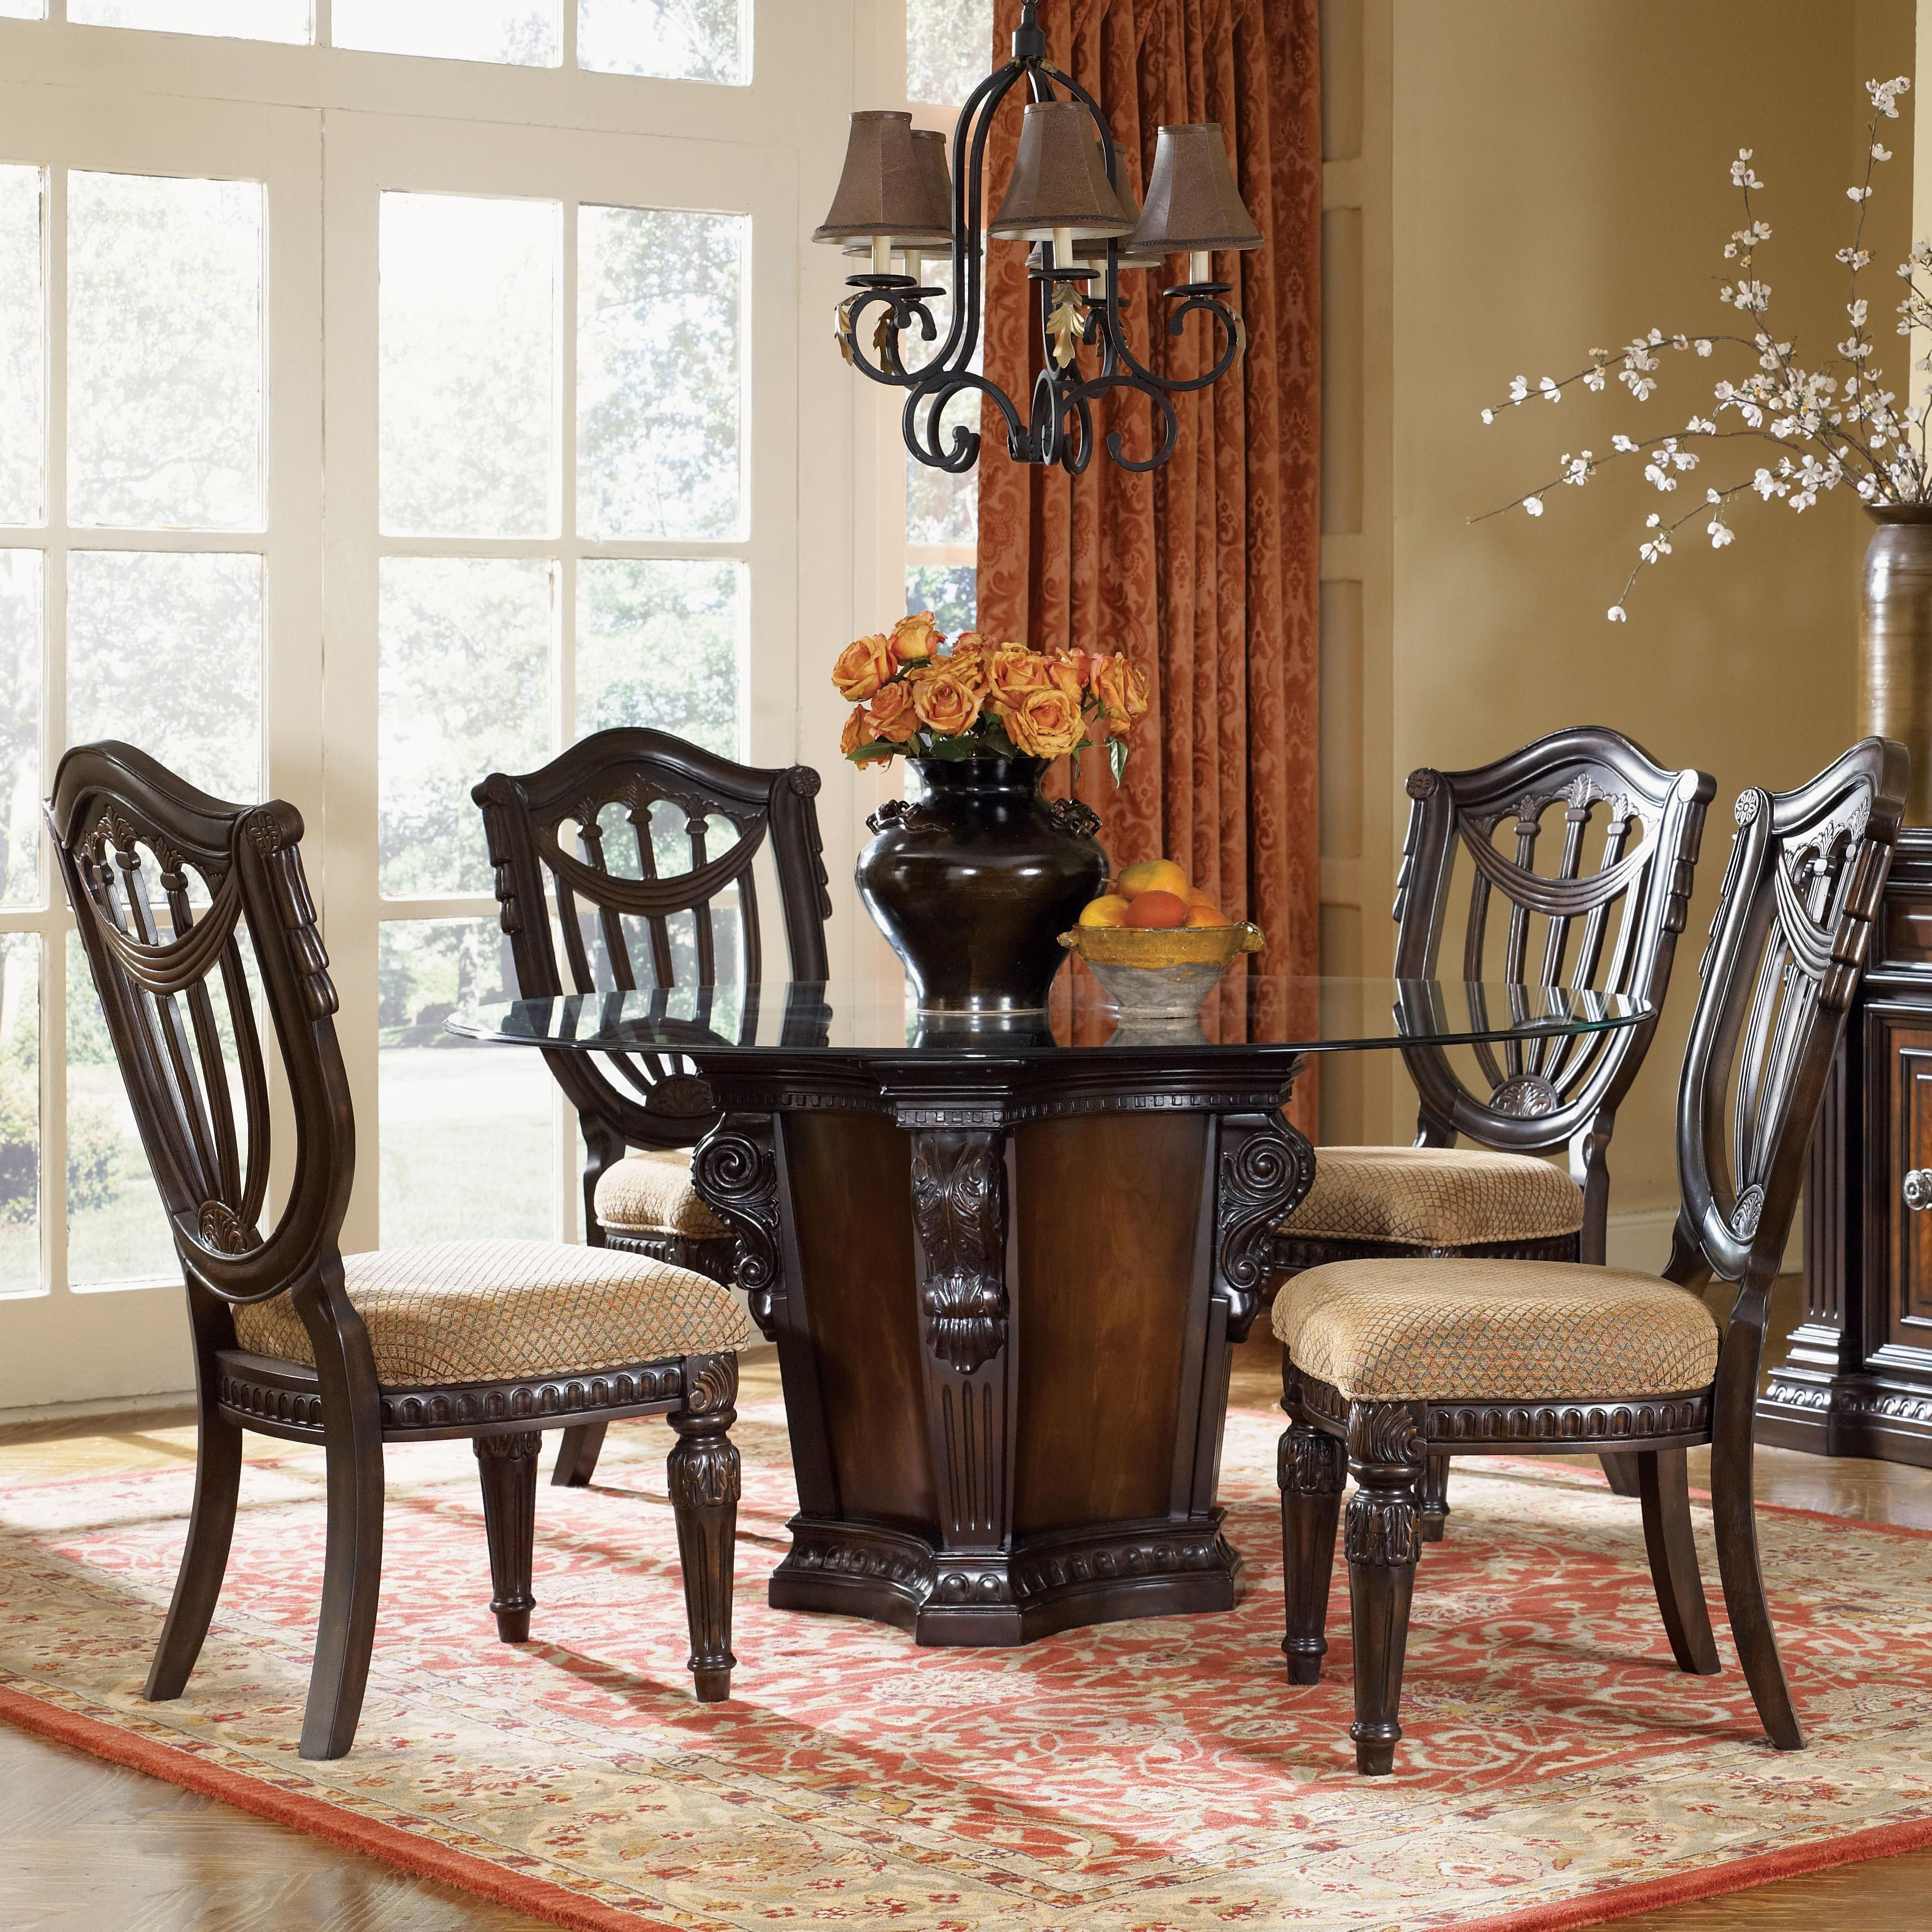 Grand estates 5 piece dining table and chairs set by for Fairmont designs dining room